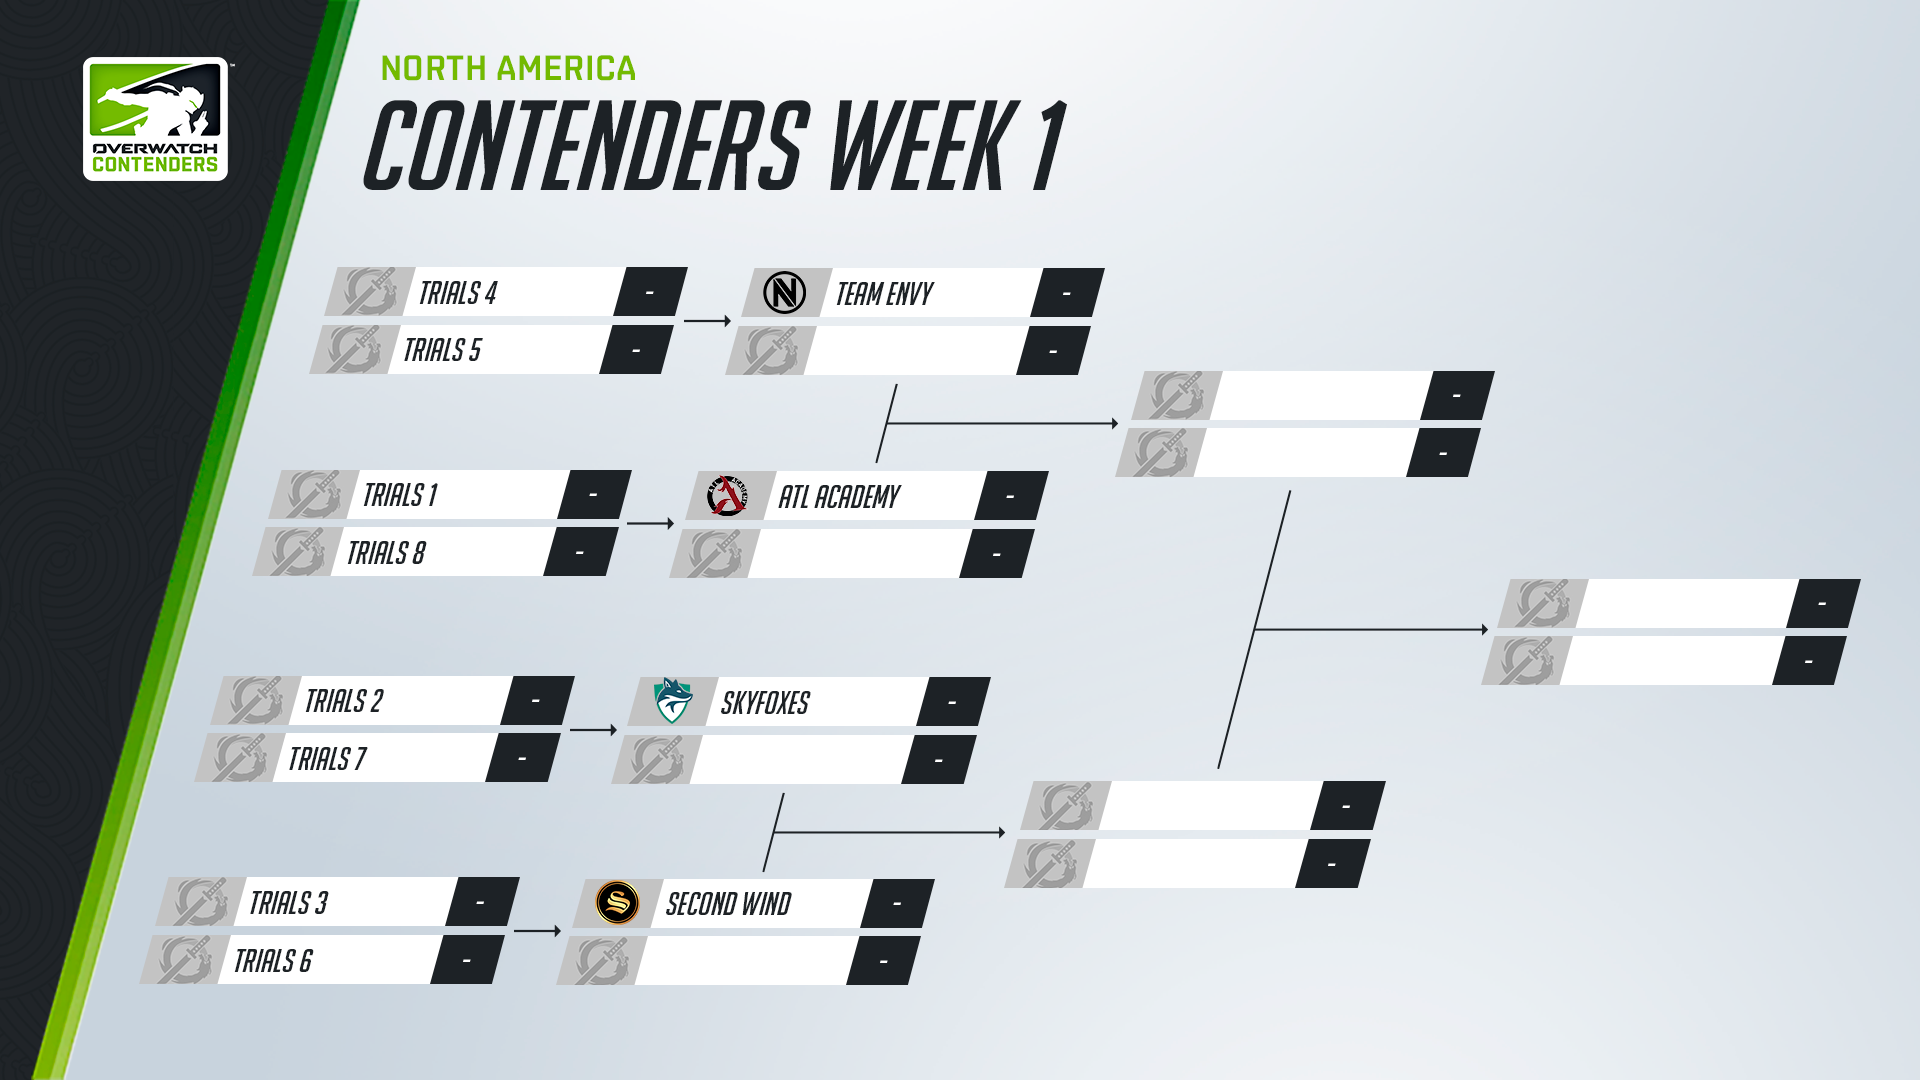 OW-Contenders_Brackets_Contenders-NA-Wk1.png